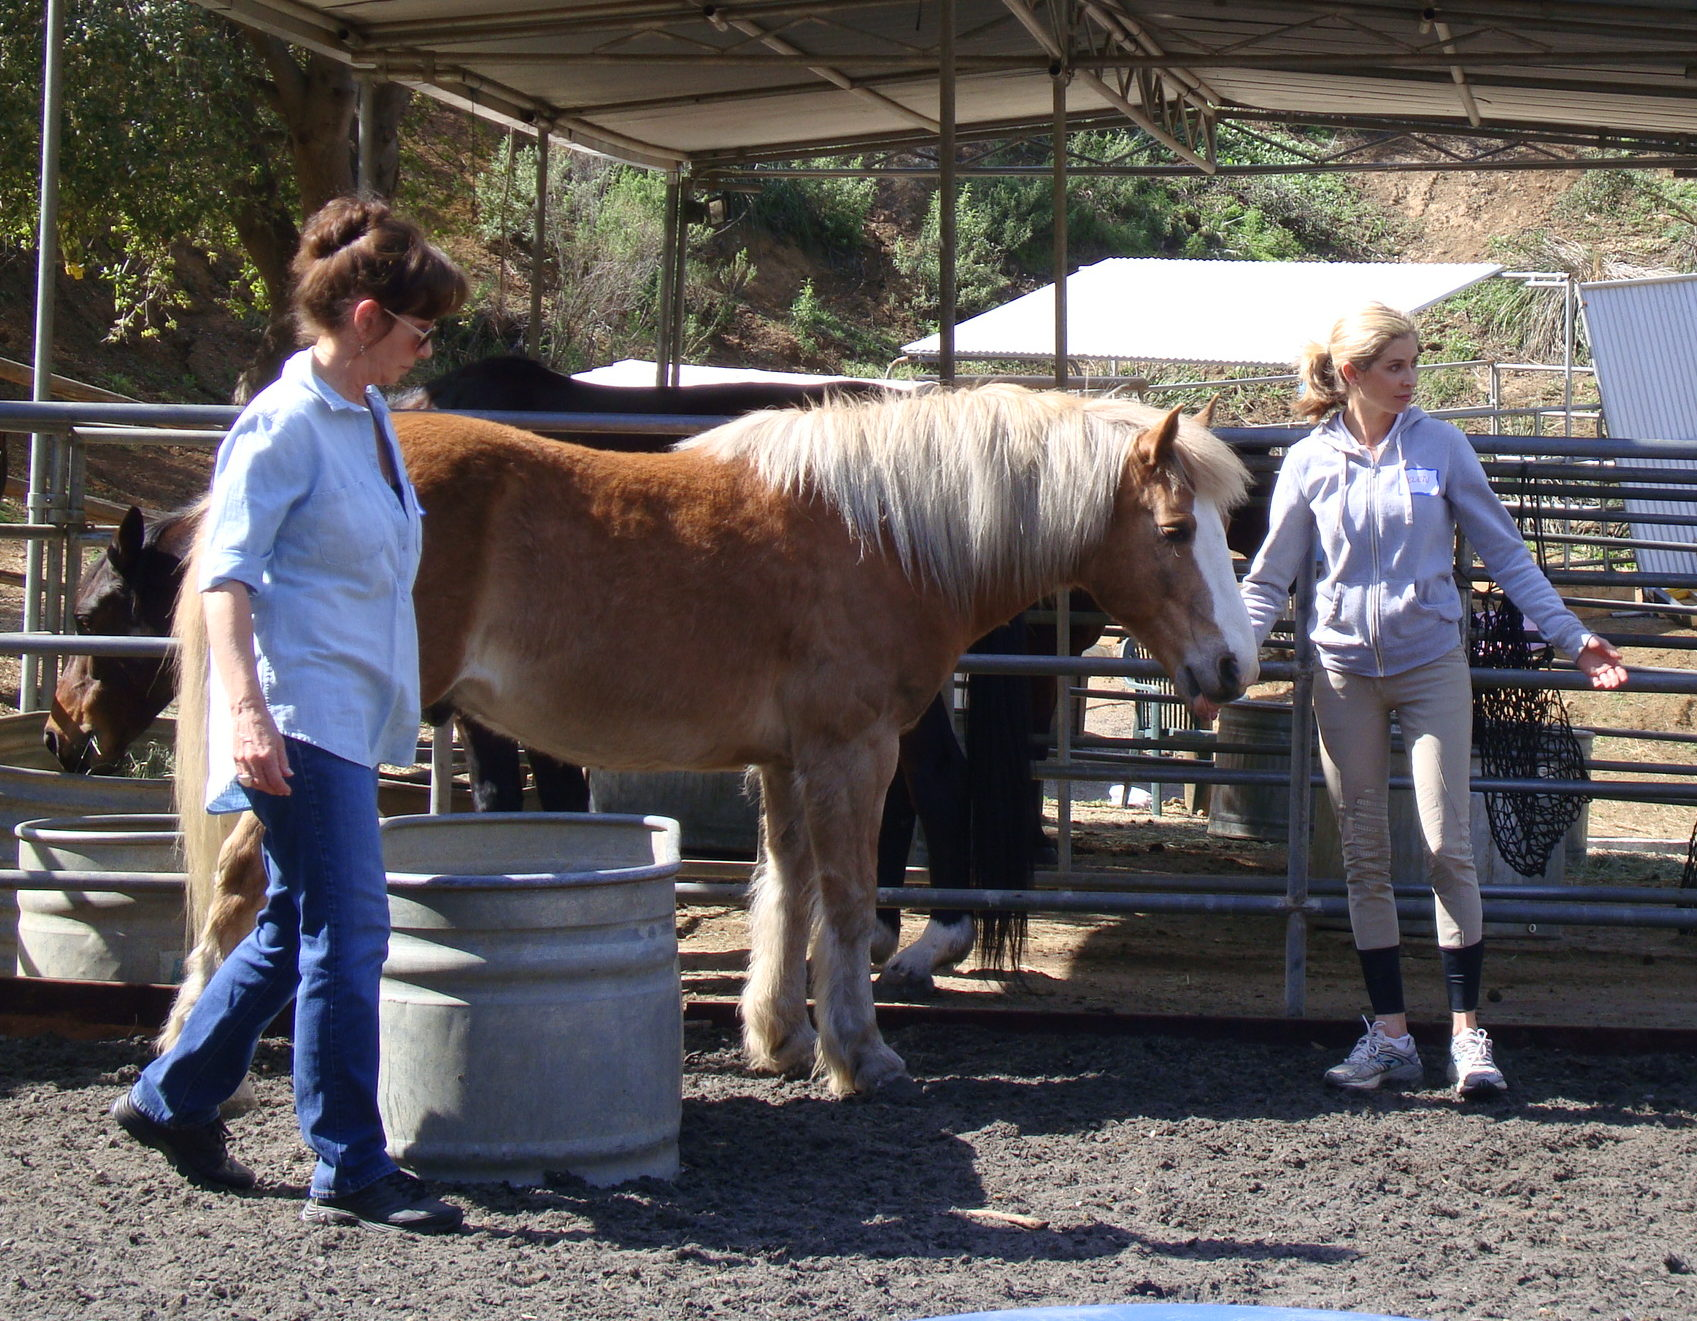 Common Feeds for Horses - thesprucepets.com